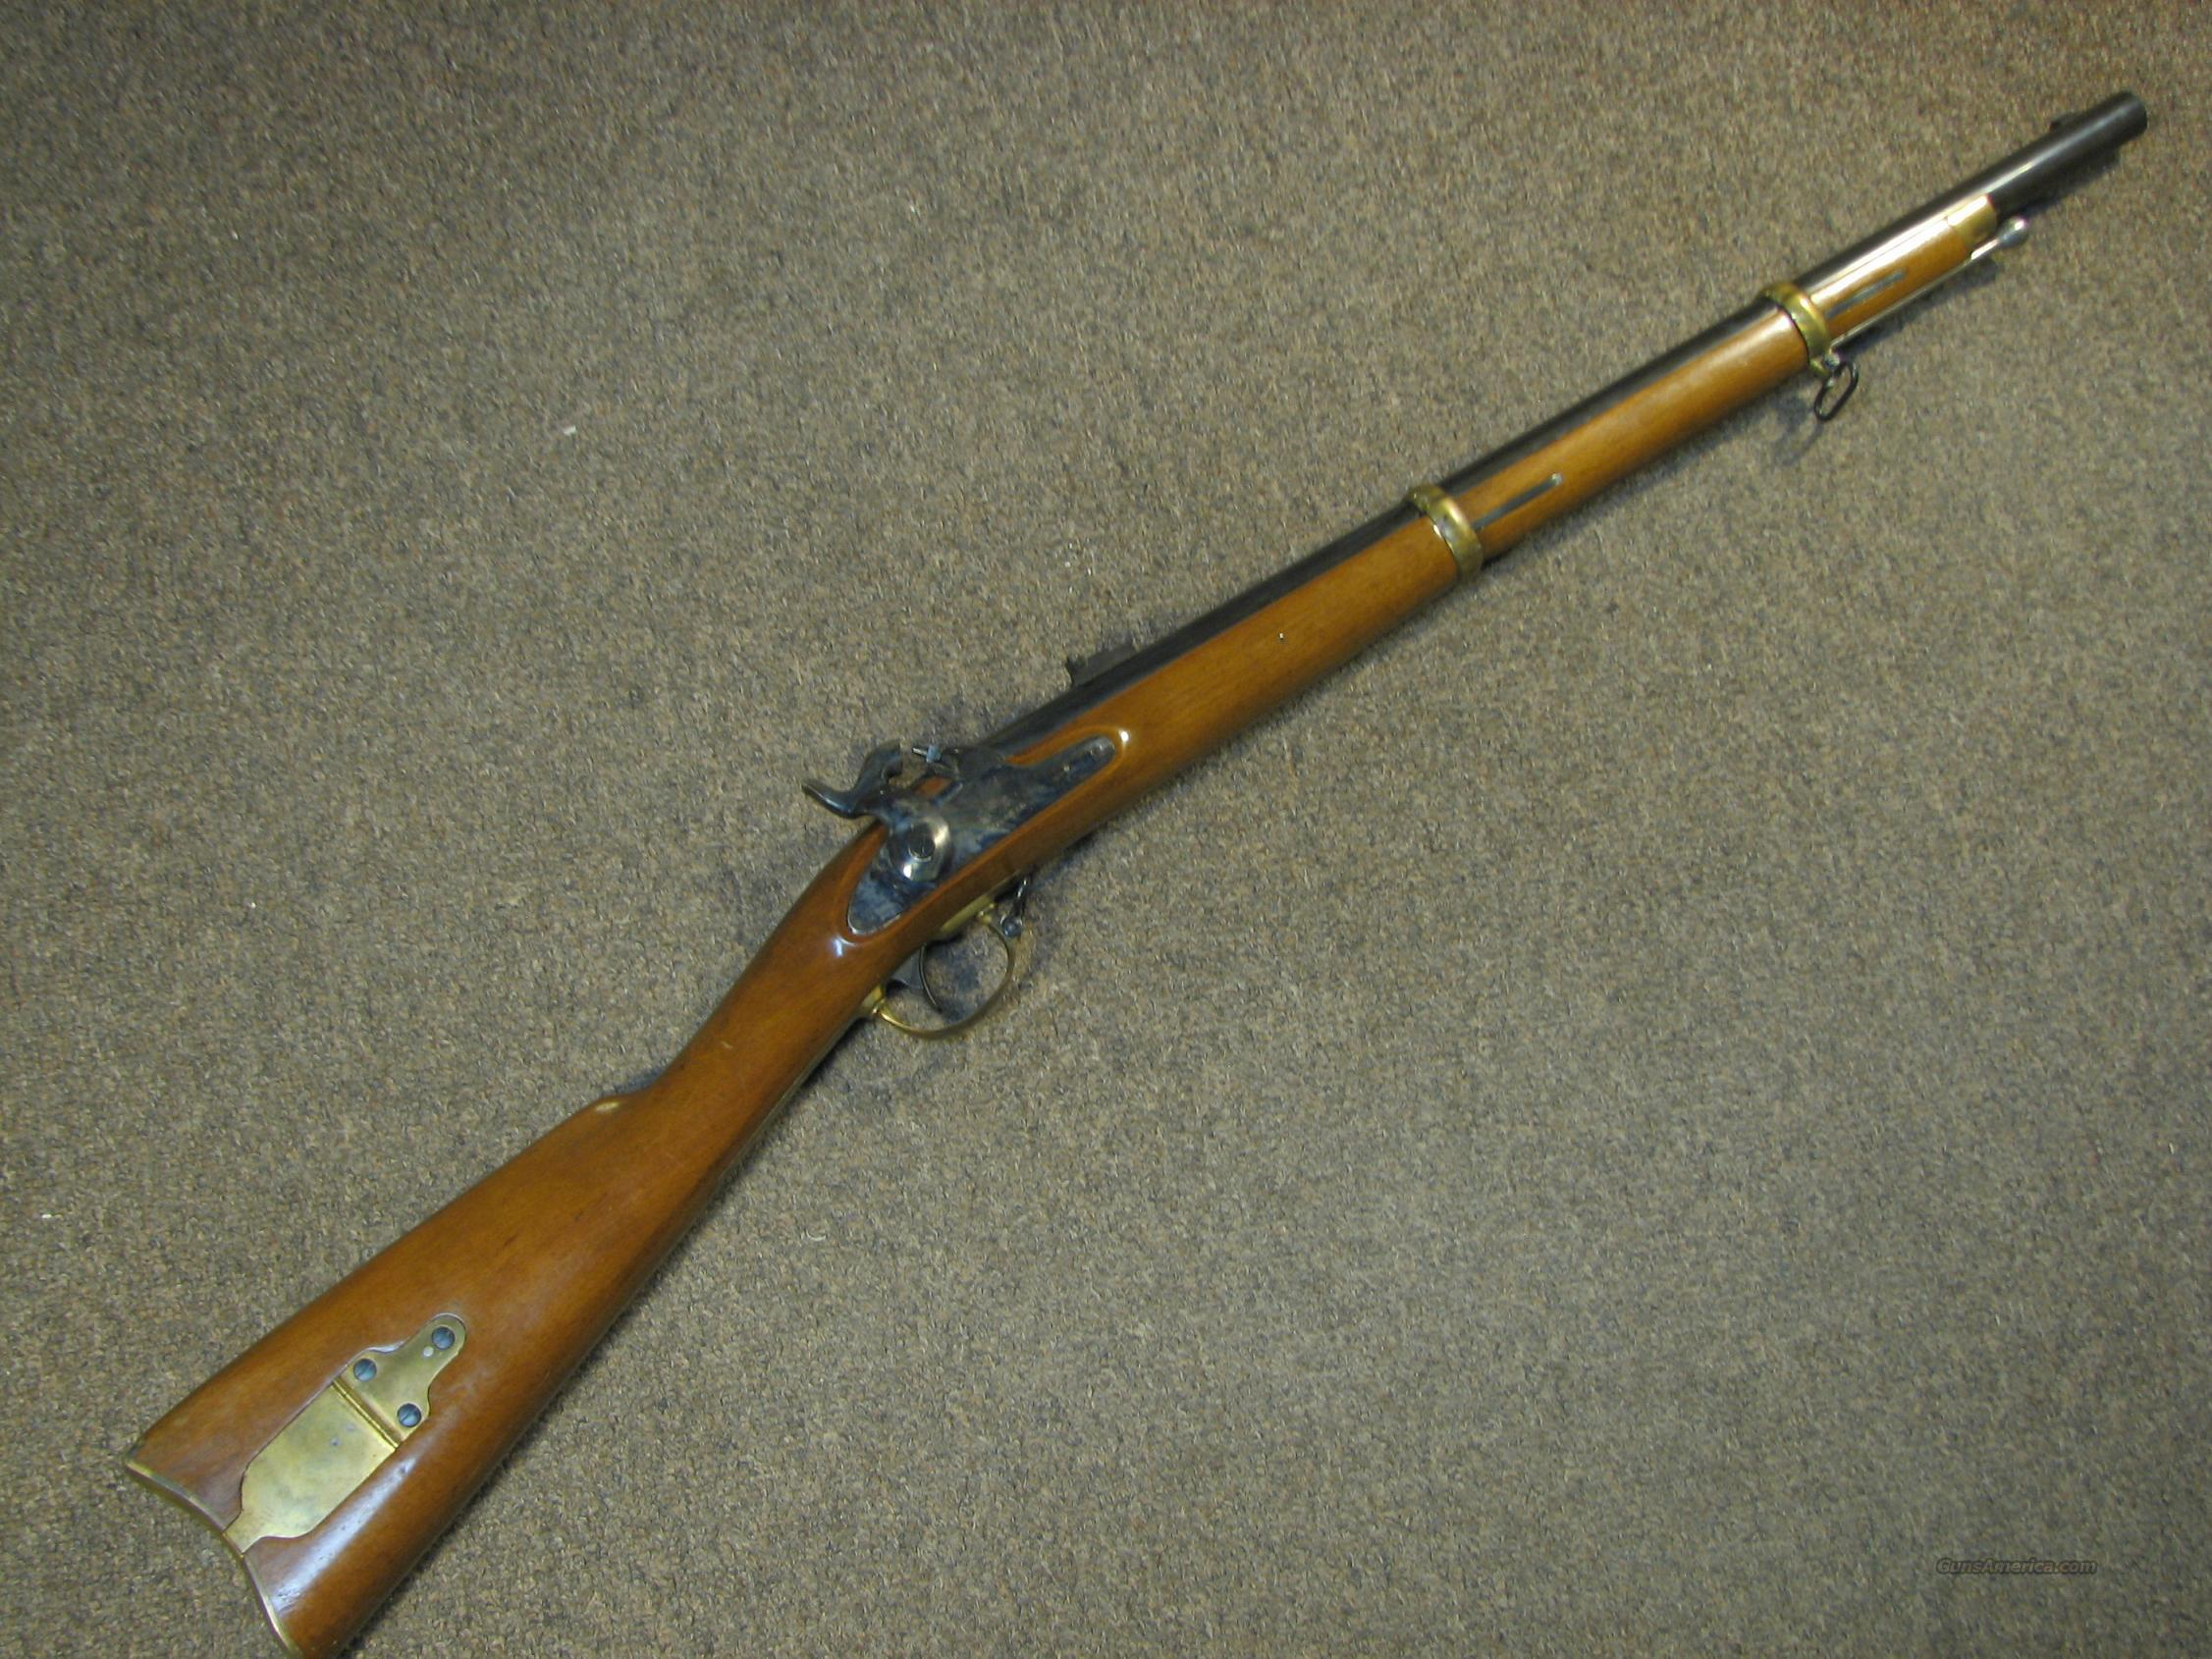 NAVY ARMS 1861 ENFIELD MUSKETOON 58 CAL BLACK POWDER RIFLE as well Eti 814 080 Mini Raytemp Infrared Thermometer 4080 P furthermore Tavern Interior 1 moreover 1179 SpitfireLFIXe 0 0 1859 1 likewise Best Travel Places Czech Republic. on castle for sales in us